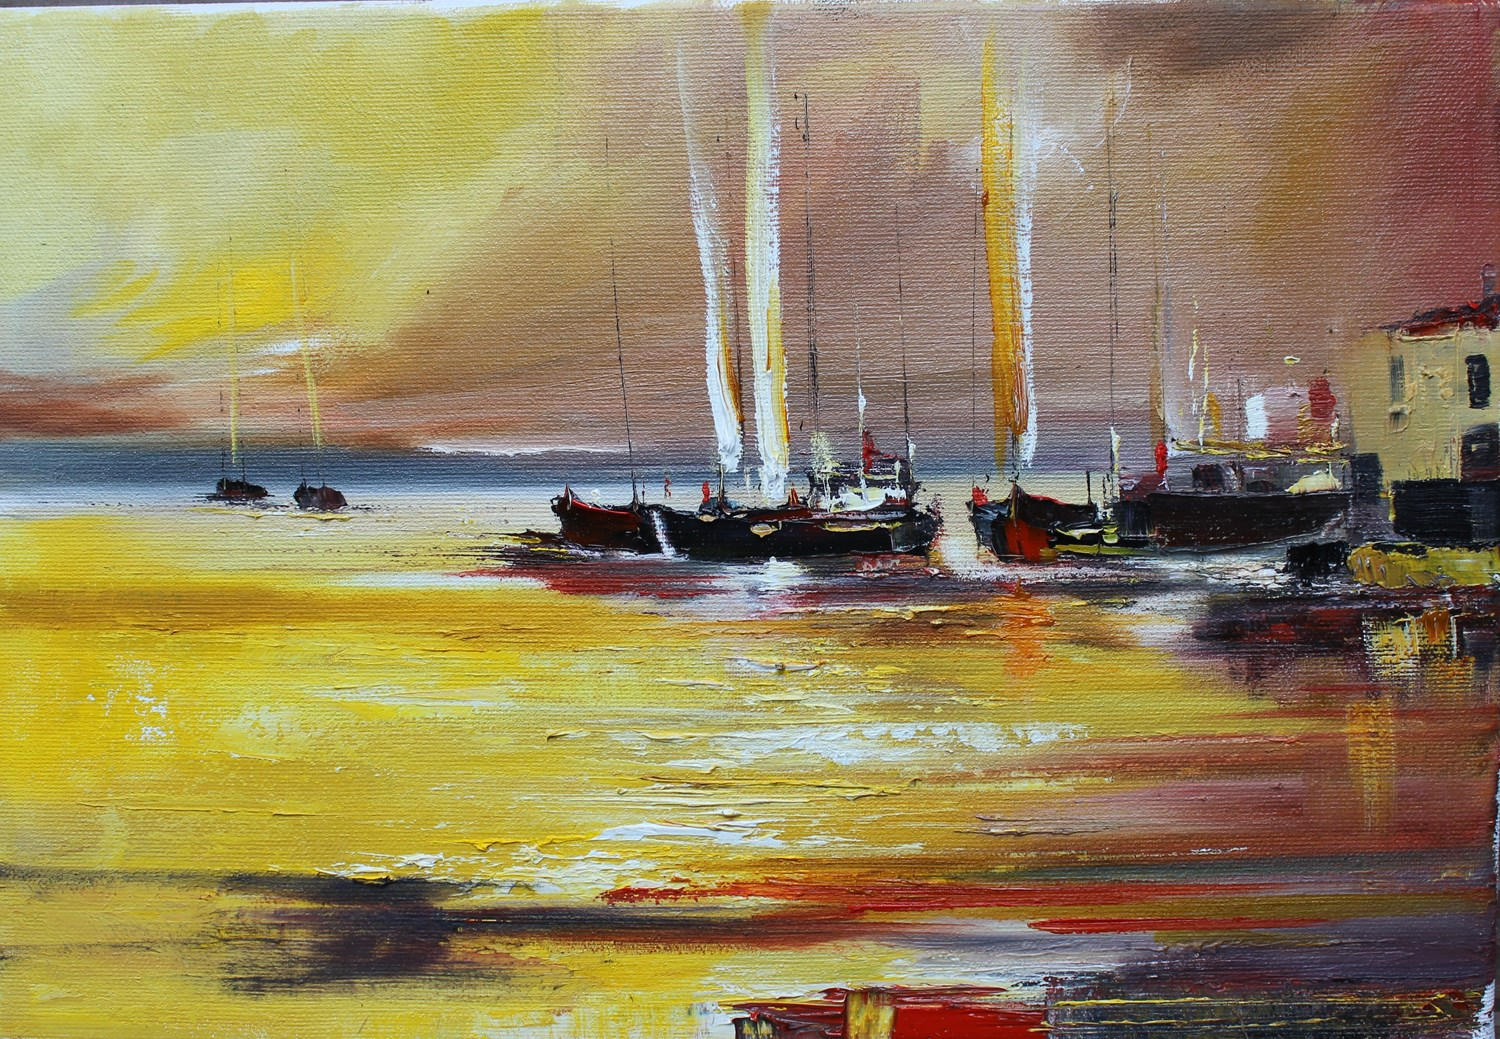 'On A Night Sailing' by artist Rosanne Barr